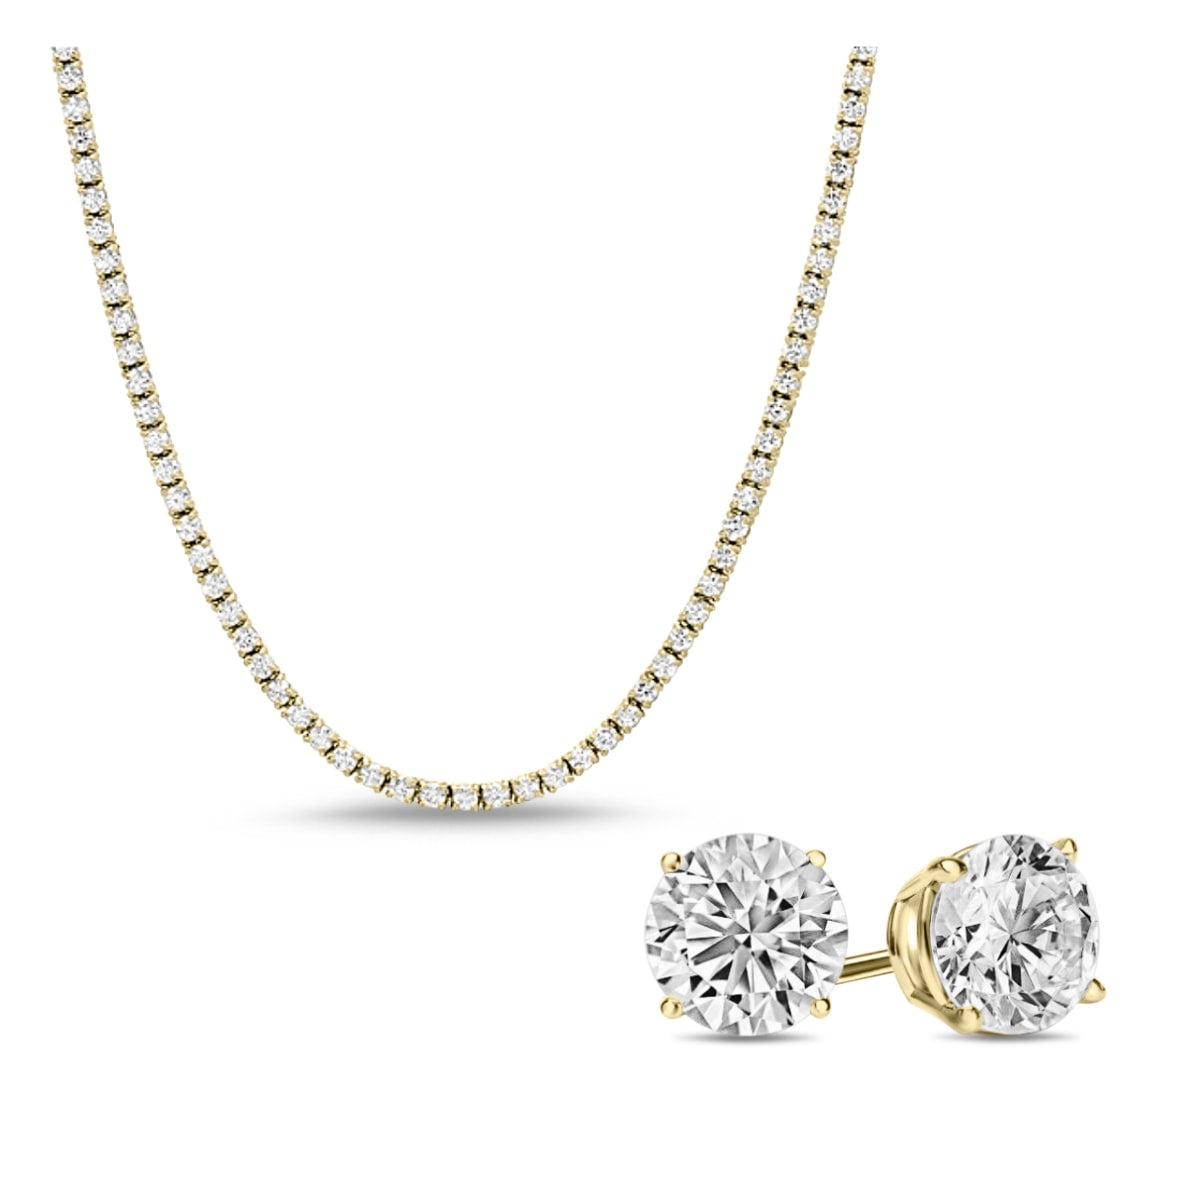 [PROMO SET] Monette 4 Prong Necklace Earrings Diamond Set in 18k Gold Vermeil